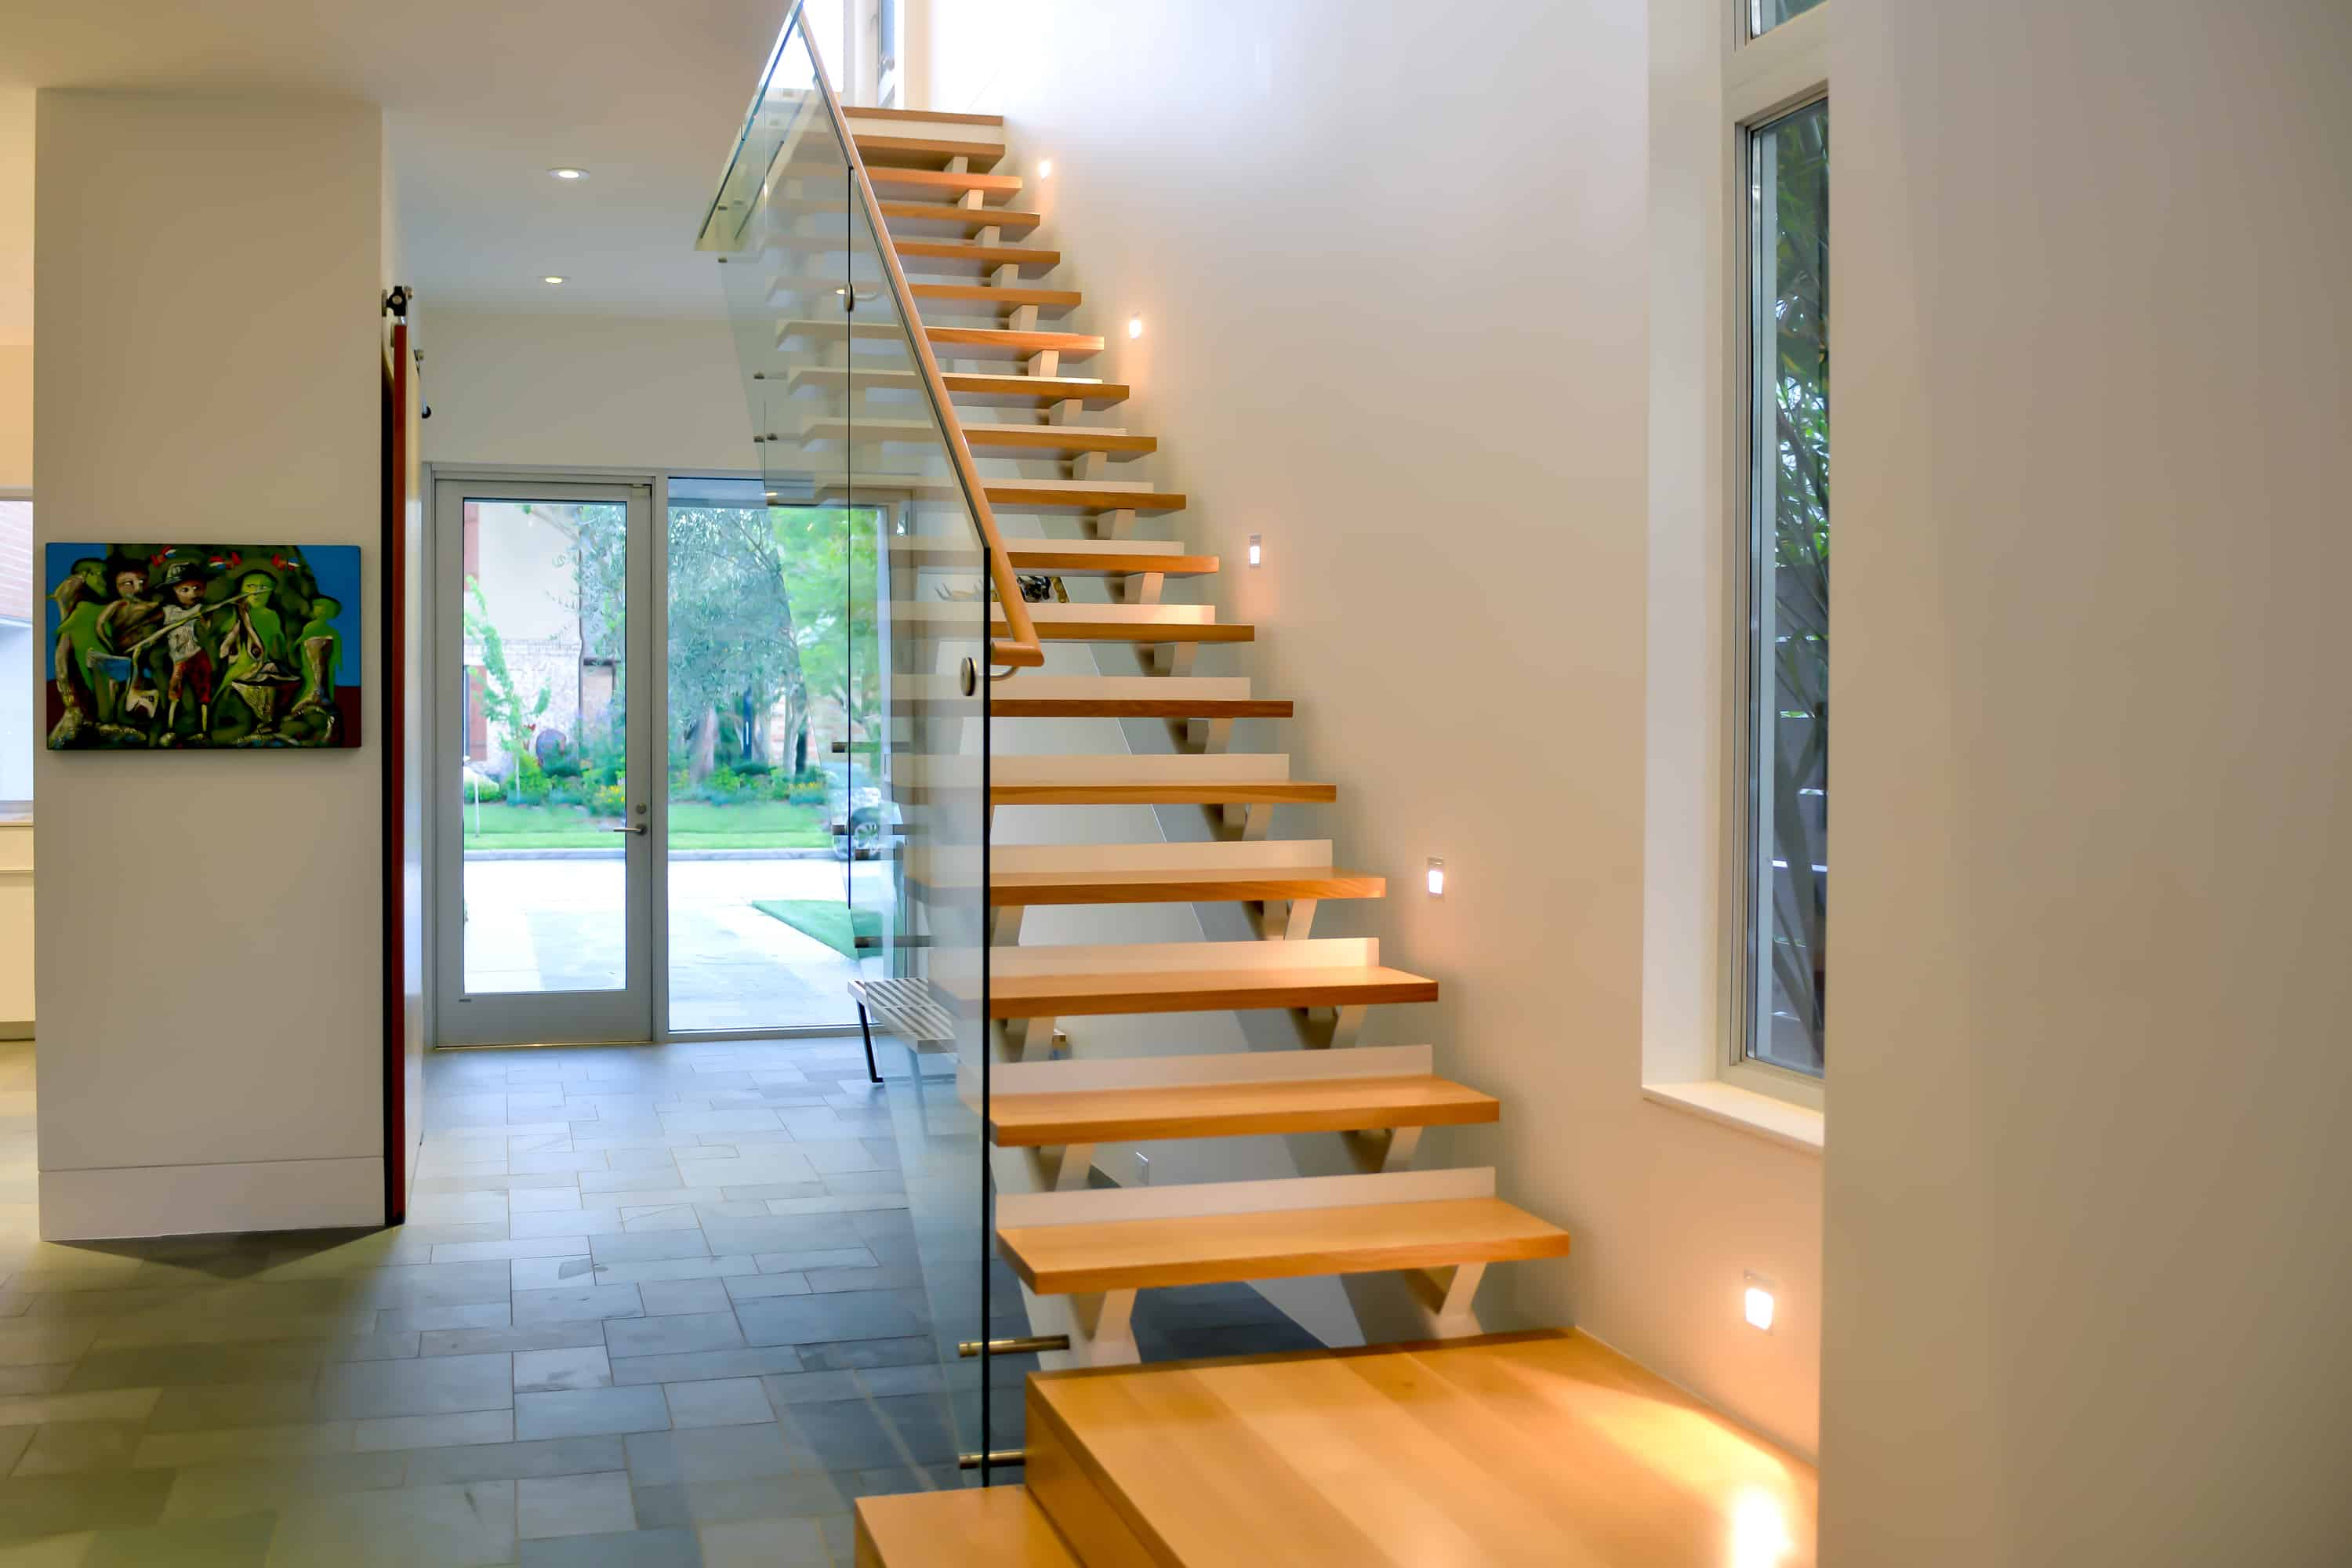 West U Modern steel and glass stair with warm wood